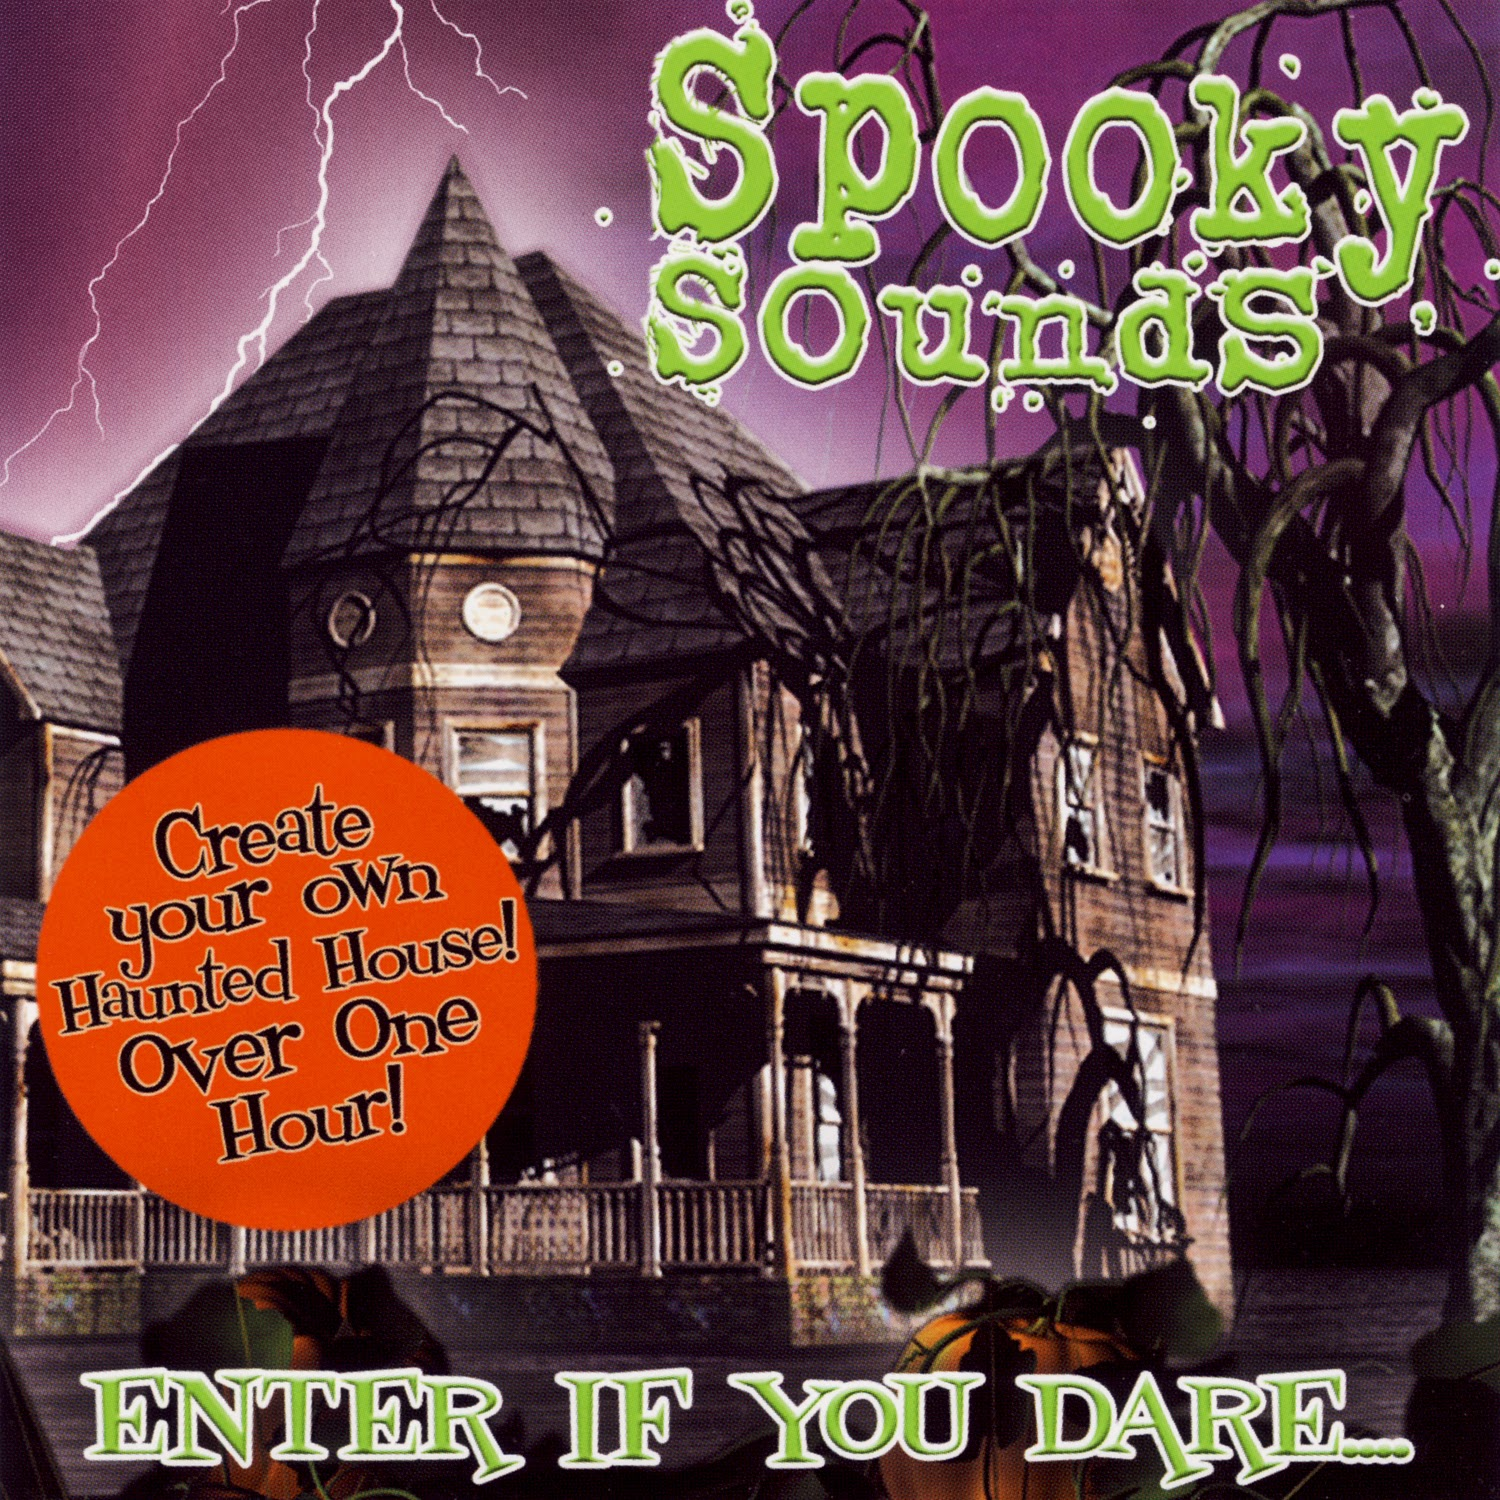 Scary Sounds of Halloween Blog: Spooky Sounds